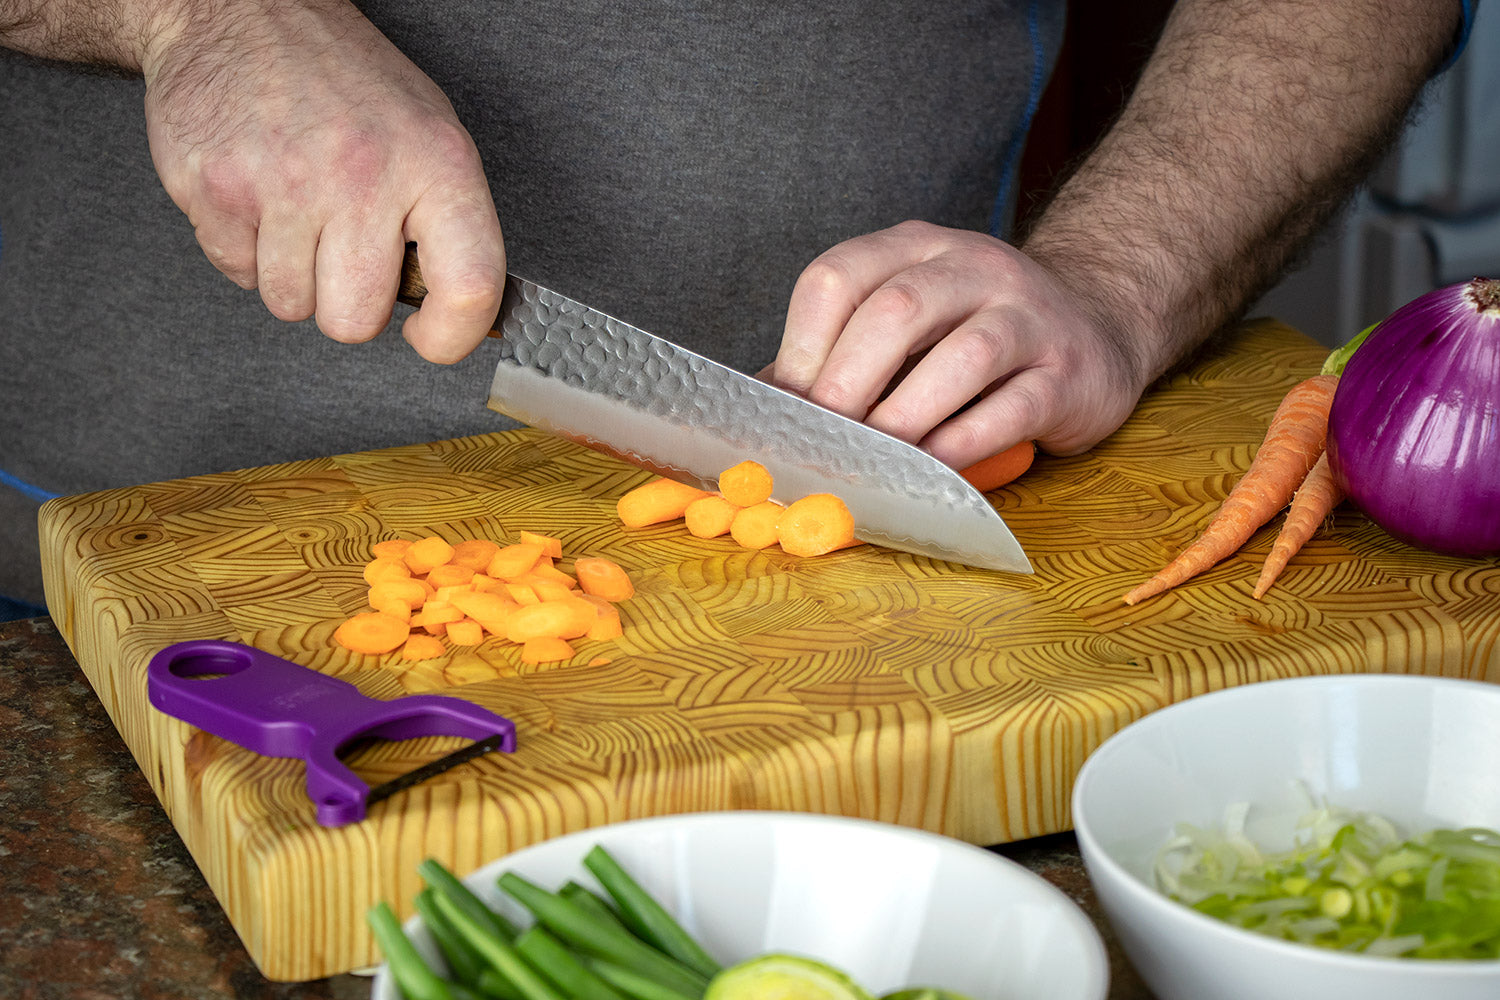 How to Use a Santoku - Knife Skills 101